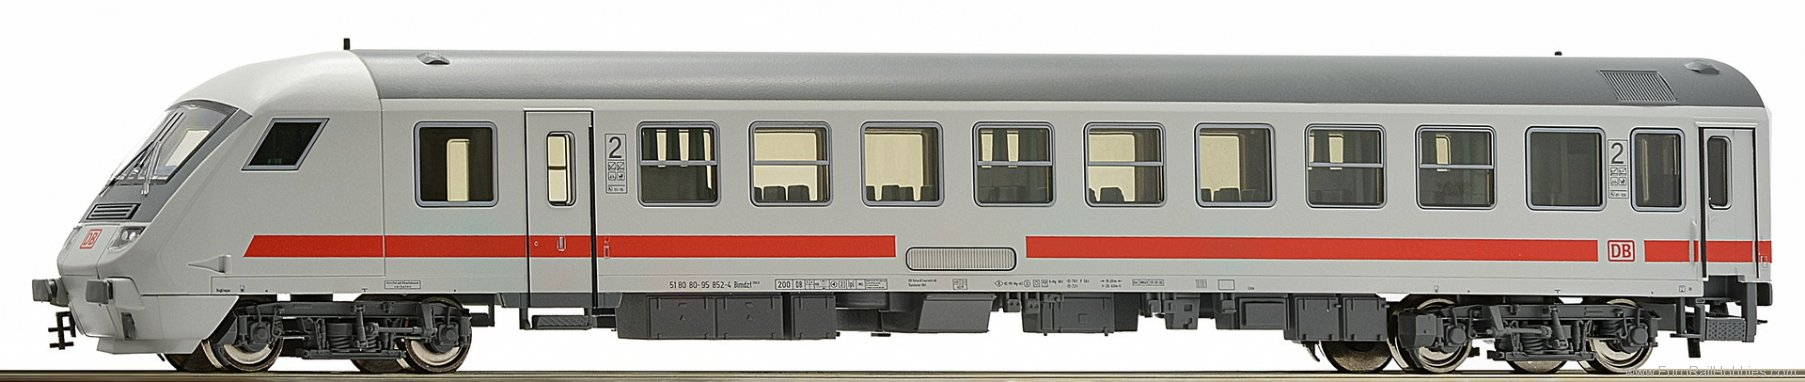 Roco 54262 IC cab car, DB AG